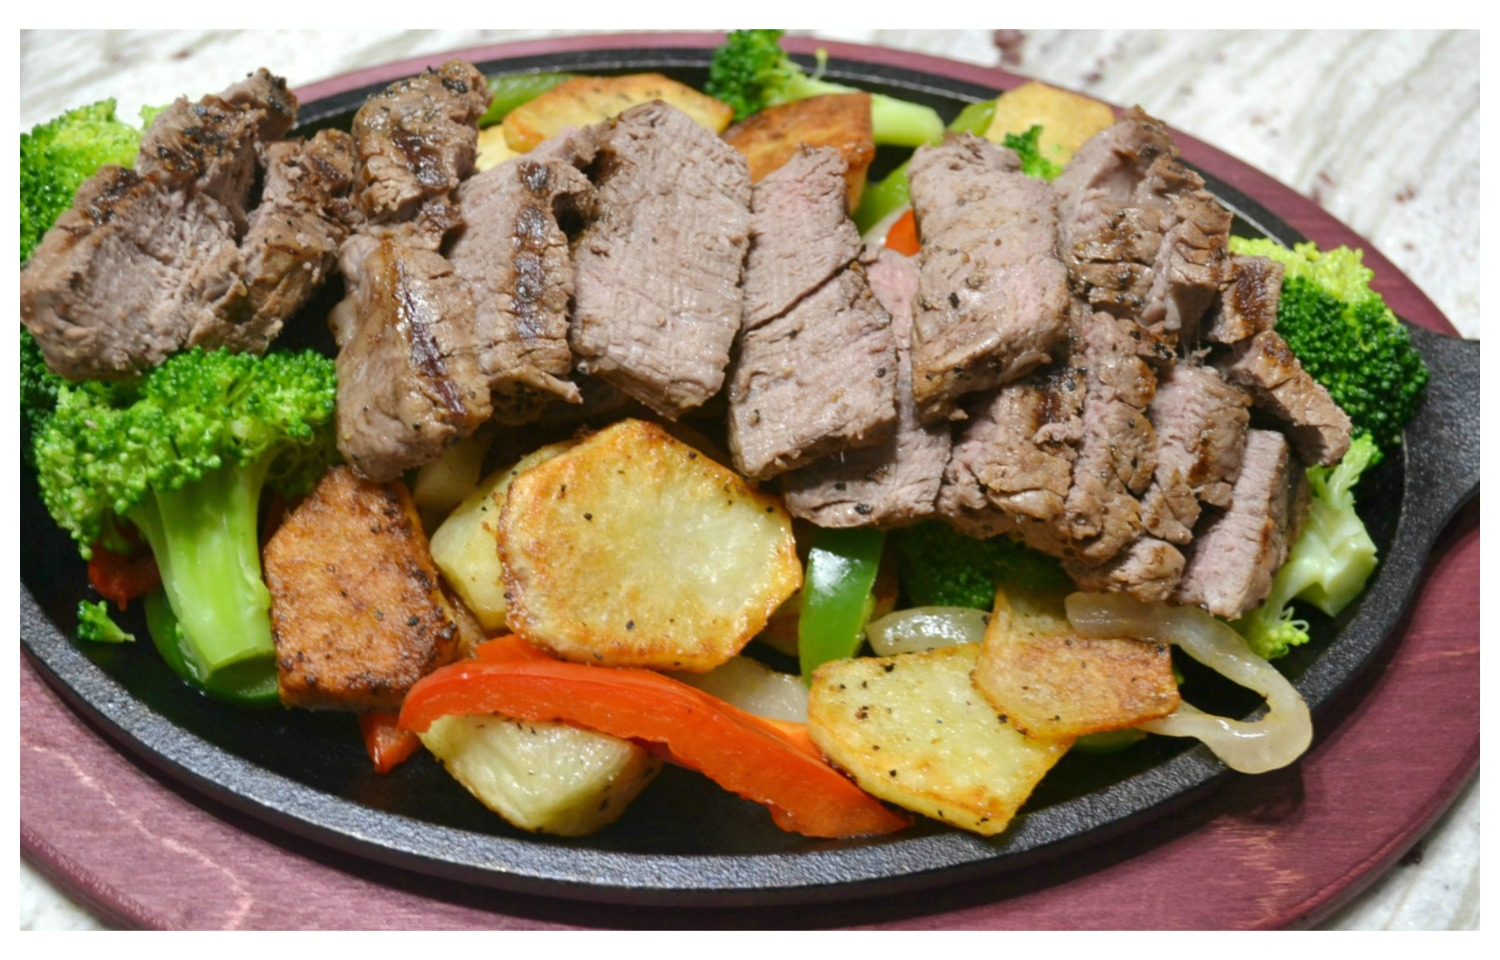 Sizzlin Steak and garlic roasted potato skillets are a delicious twist on a steak and potato dinner